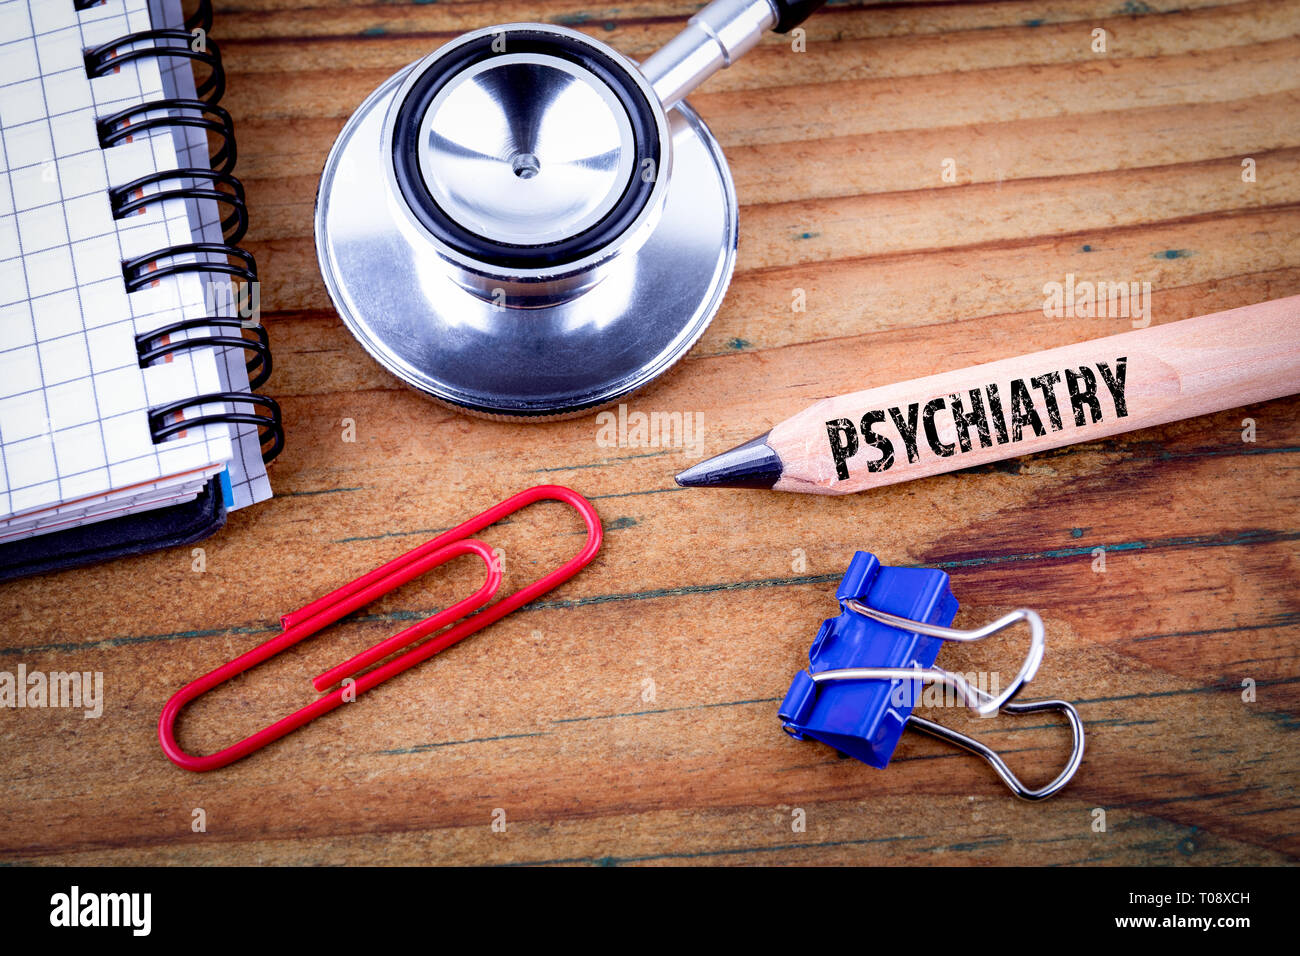 PSYCHIATRY text on pencil - Stock Image